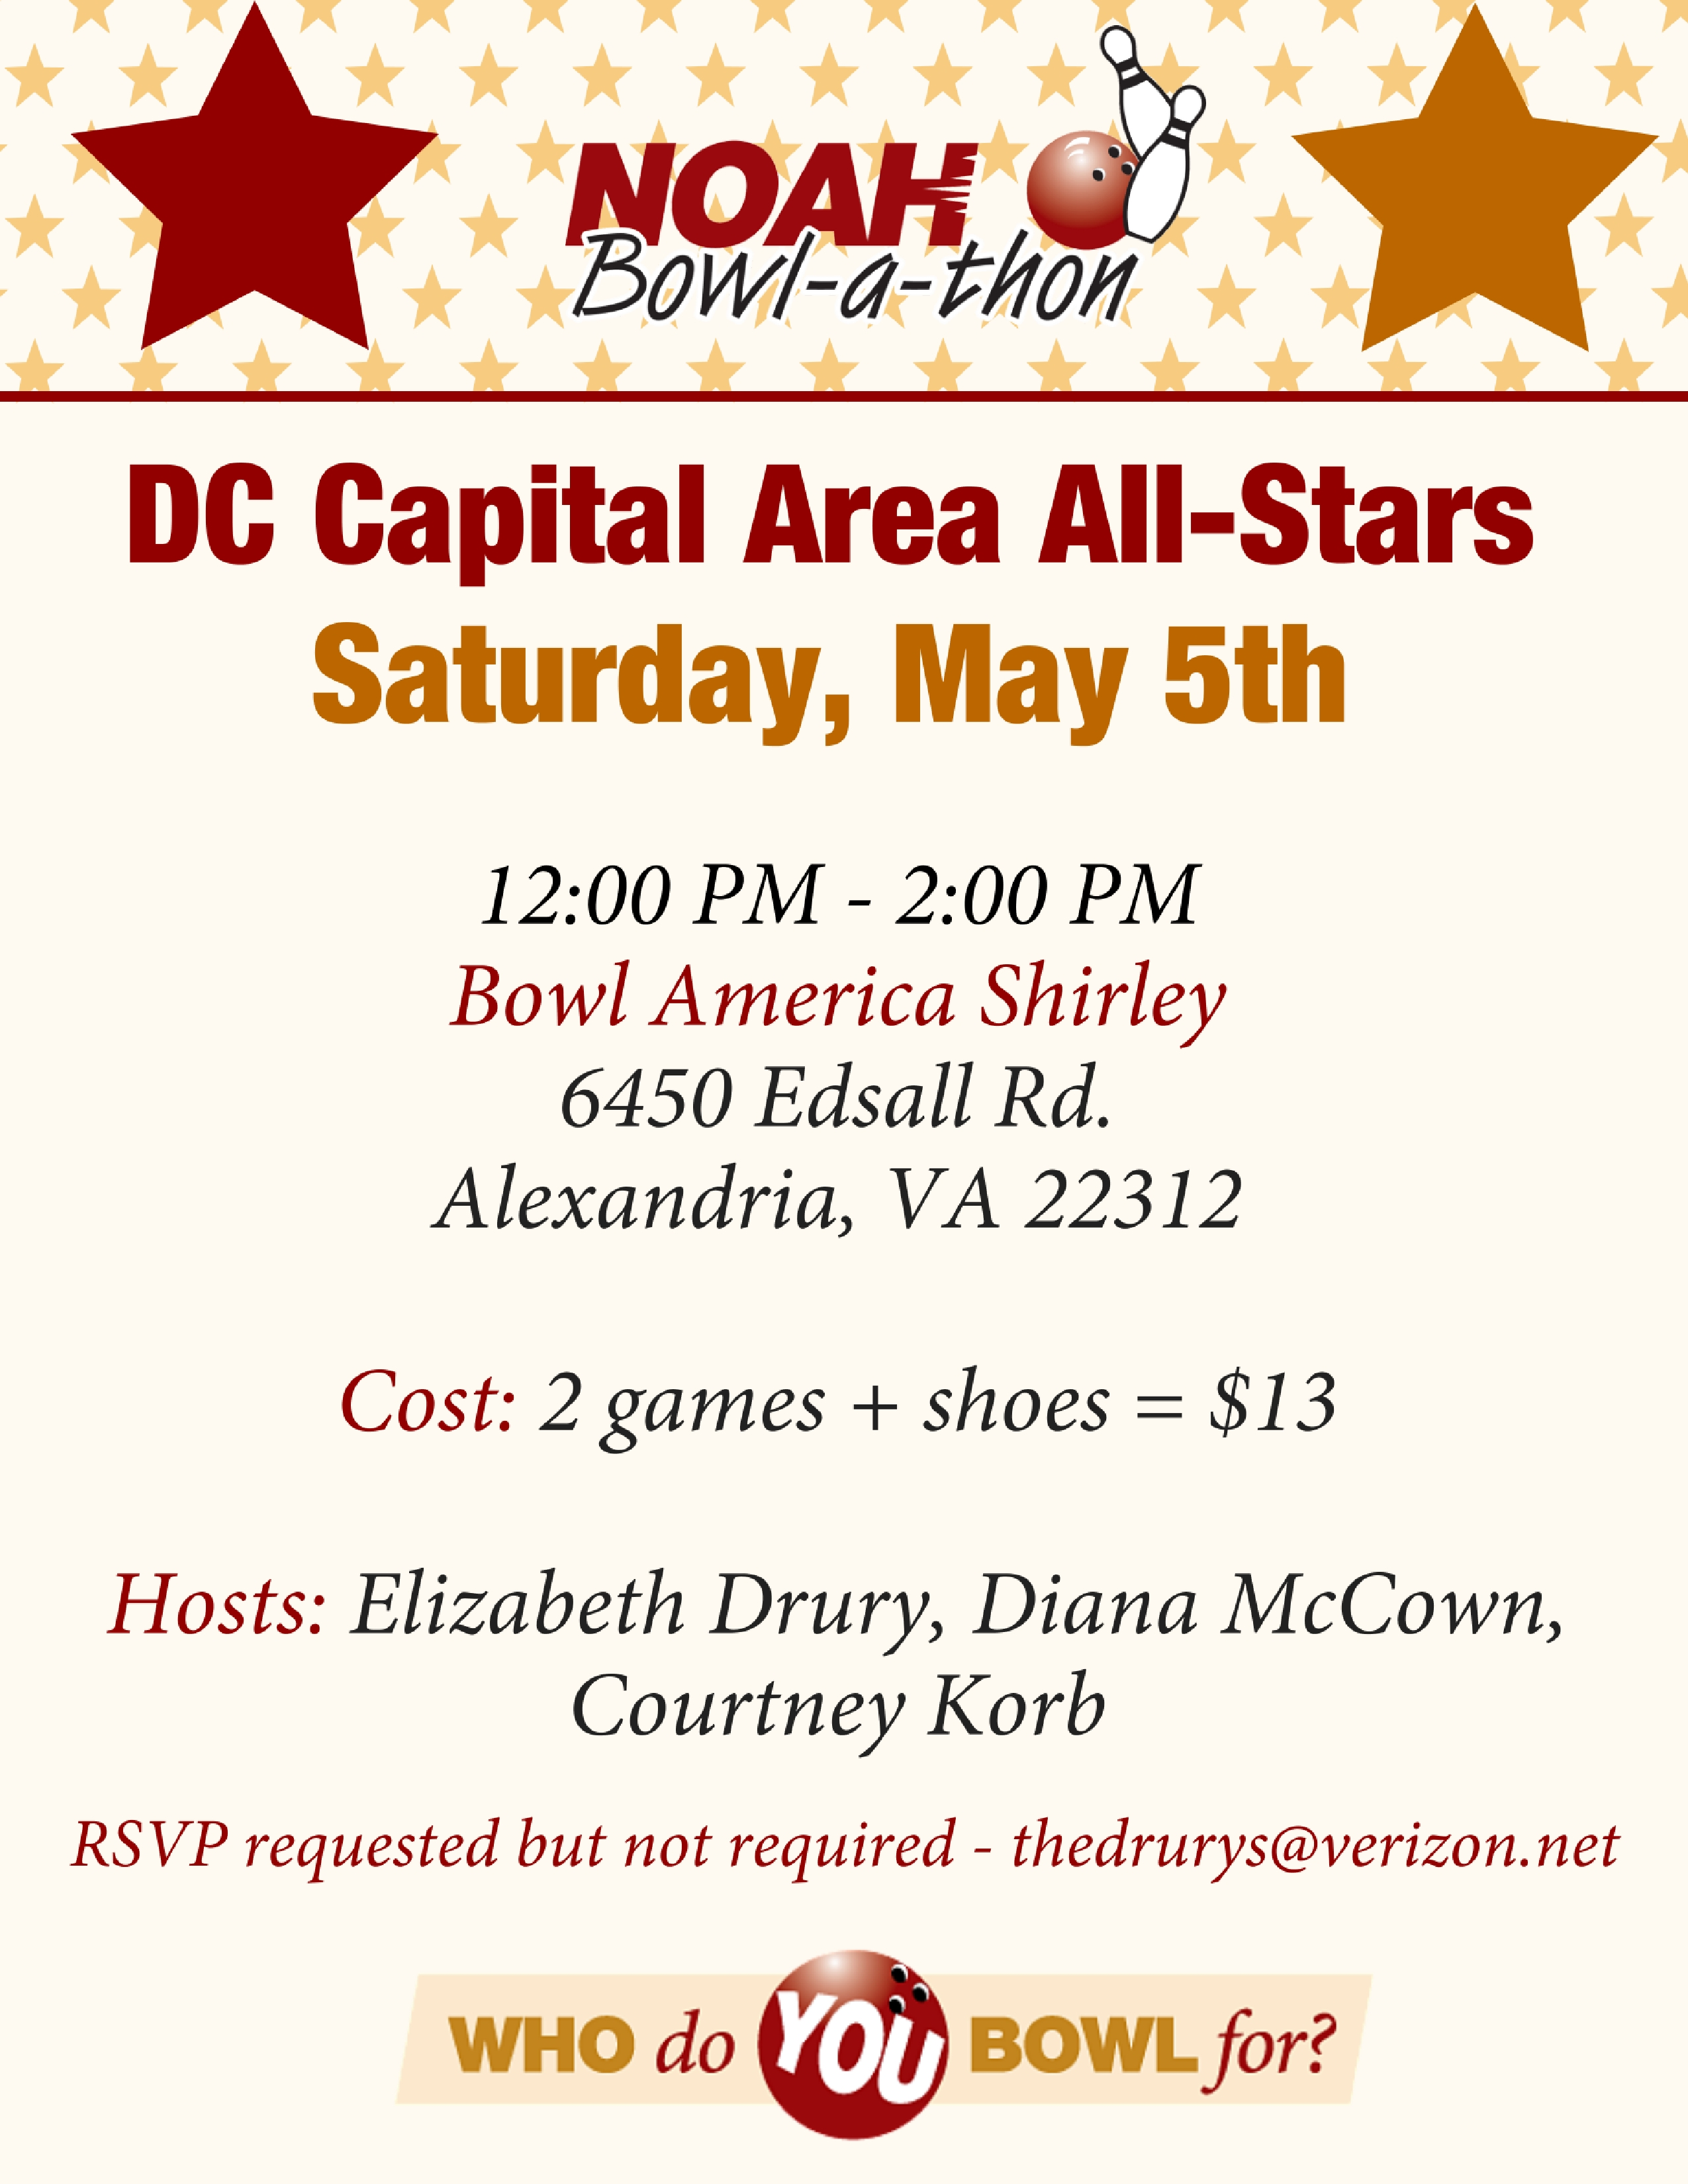 DC Capital Area All-Stars - Alexandria, VA